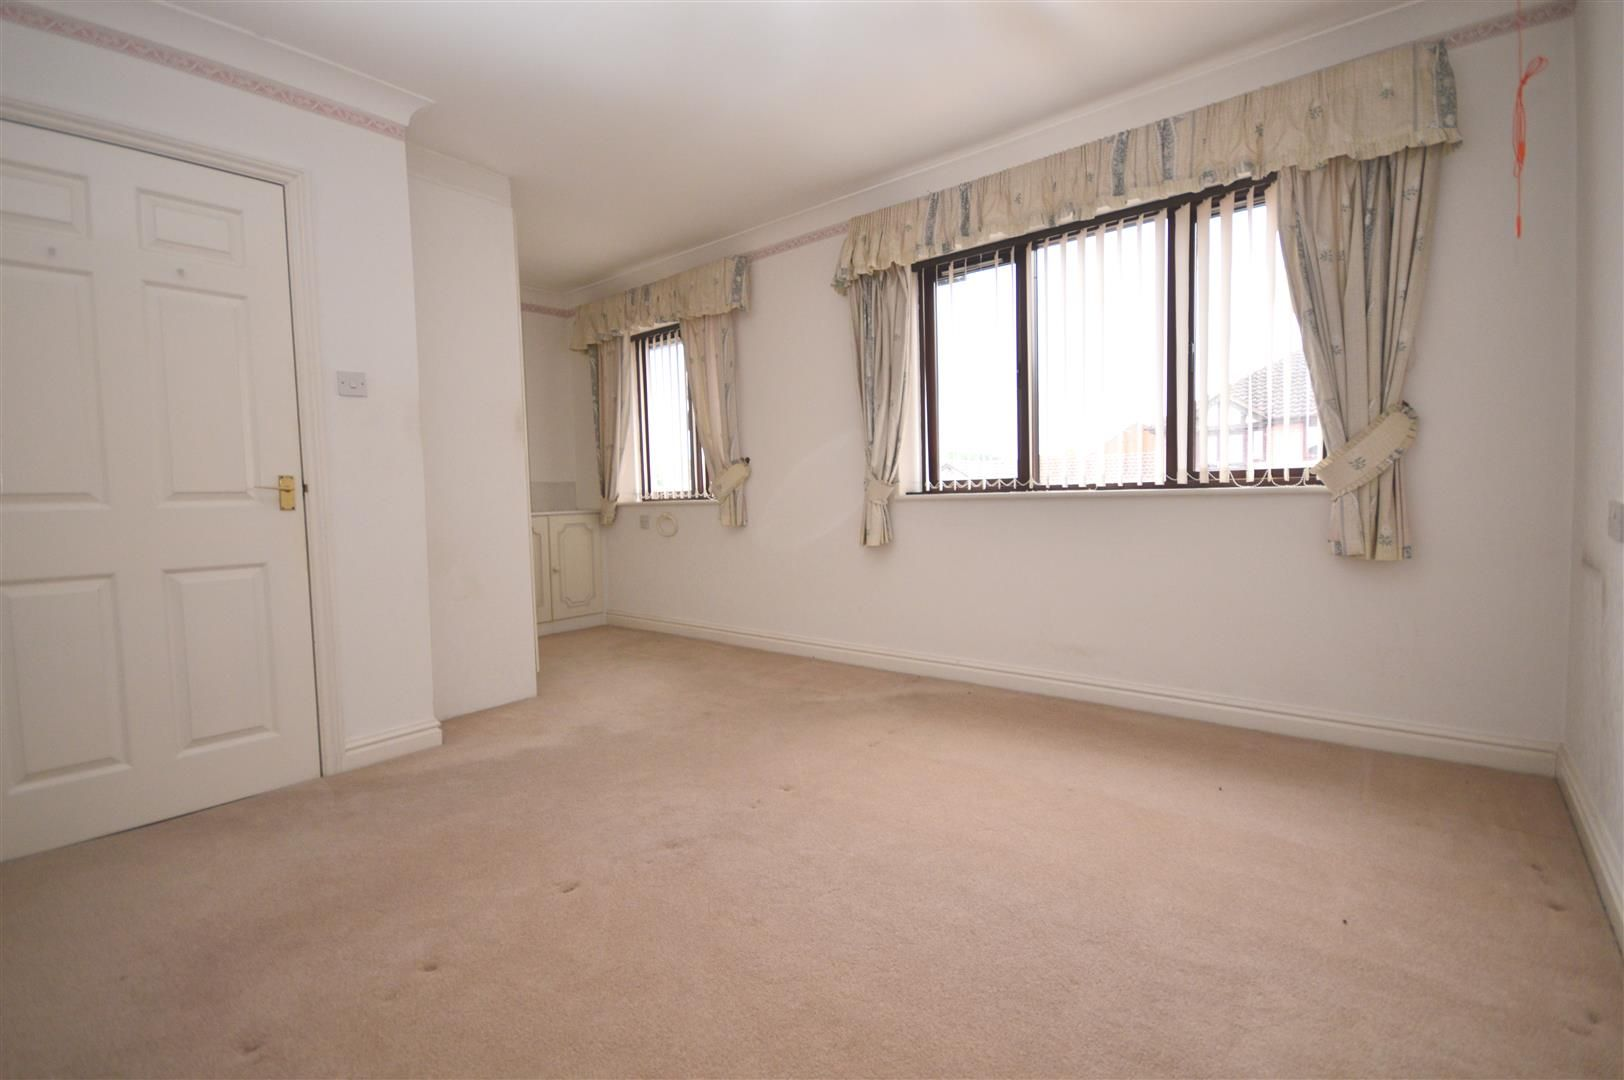 2 bed end-of-terrace for sale in Belmont 2